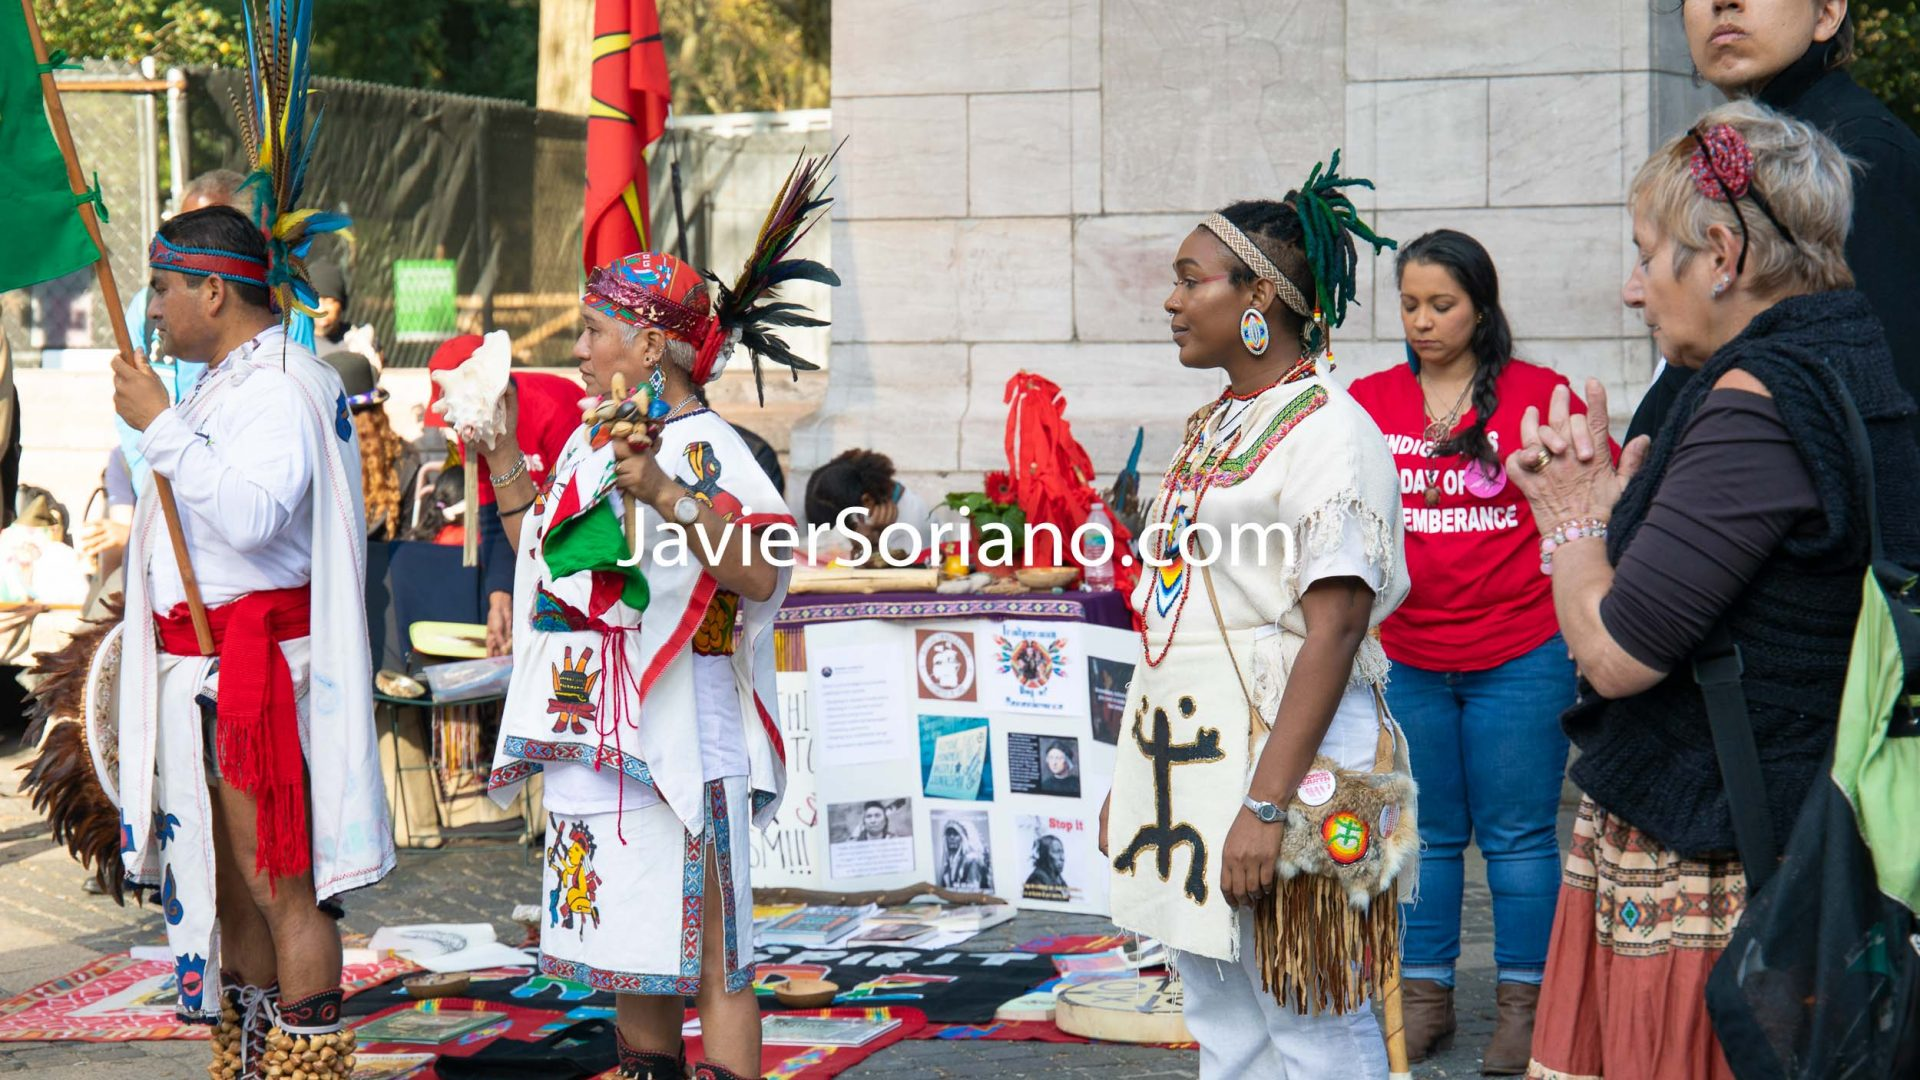 Sunday, October 13th, 2019. New York City - Indigenous peoples and their allies gathered at Columbus circle (59th Street and Central Park West) to celebrate NYC's 12th Annual Indigenous Day of Remembrance. More and more cities and states in the United States of America are honoring Indigenous Peoples' Day instead of Columbus Day. Photo by Javier Soriano/www.JavierSoriano.com